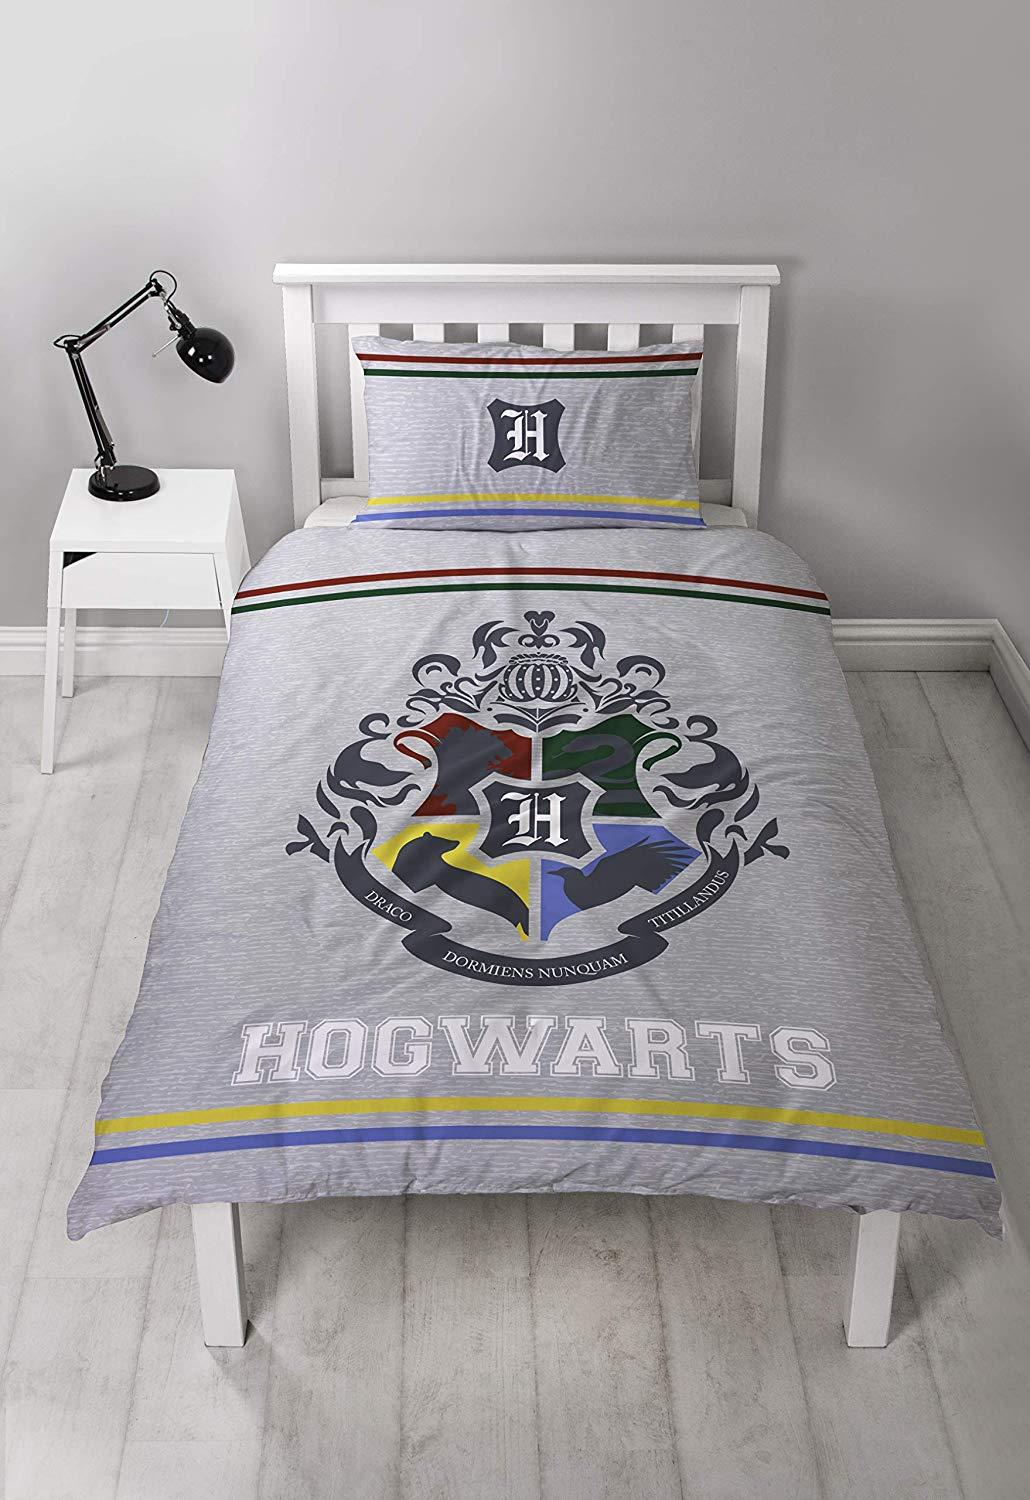 Official-Harry-Potter-Licensed-Duvet-Covers-Single-Double-Muggles-Hogwarts-Charm thumbnail 6